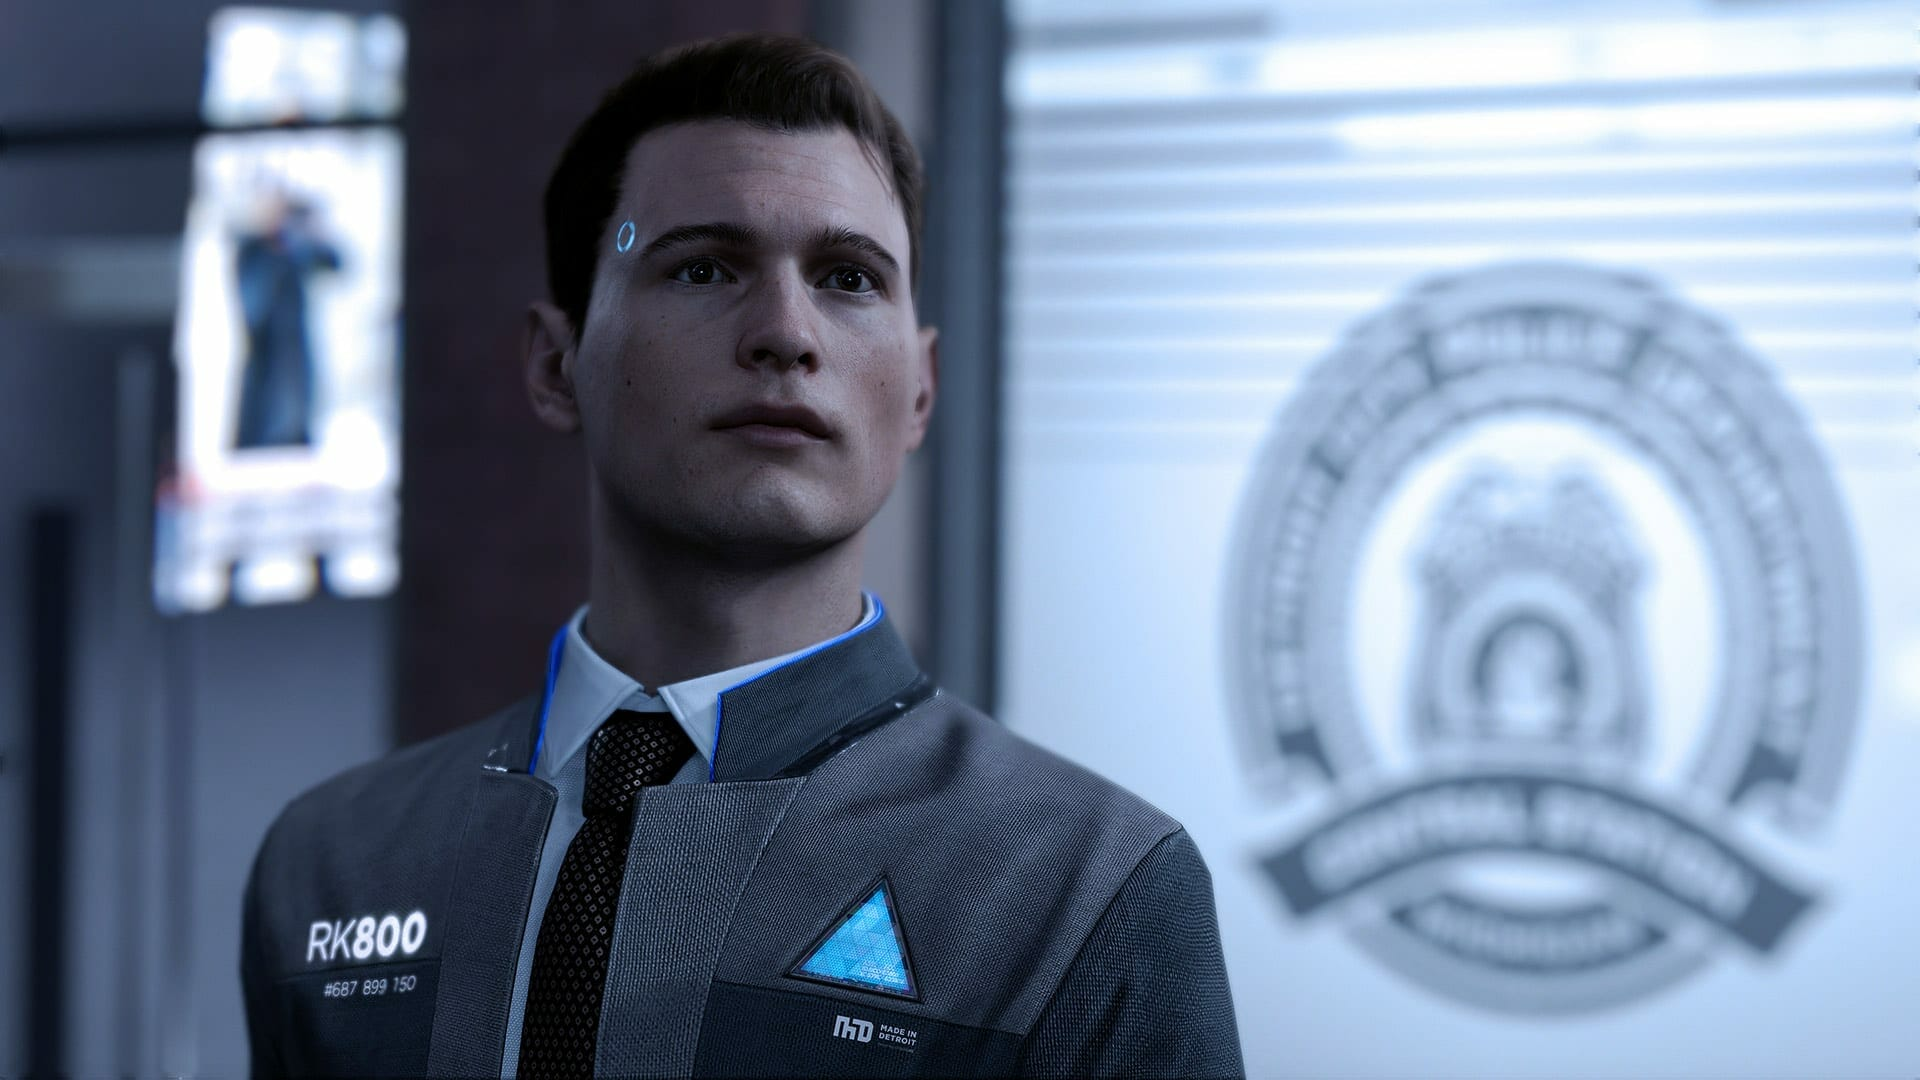 Become Human finally gets a release date